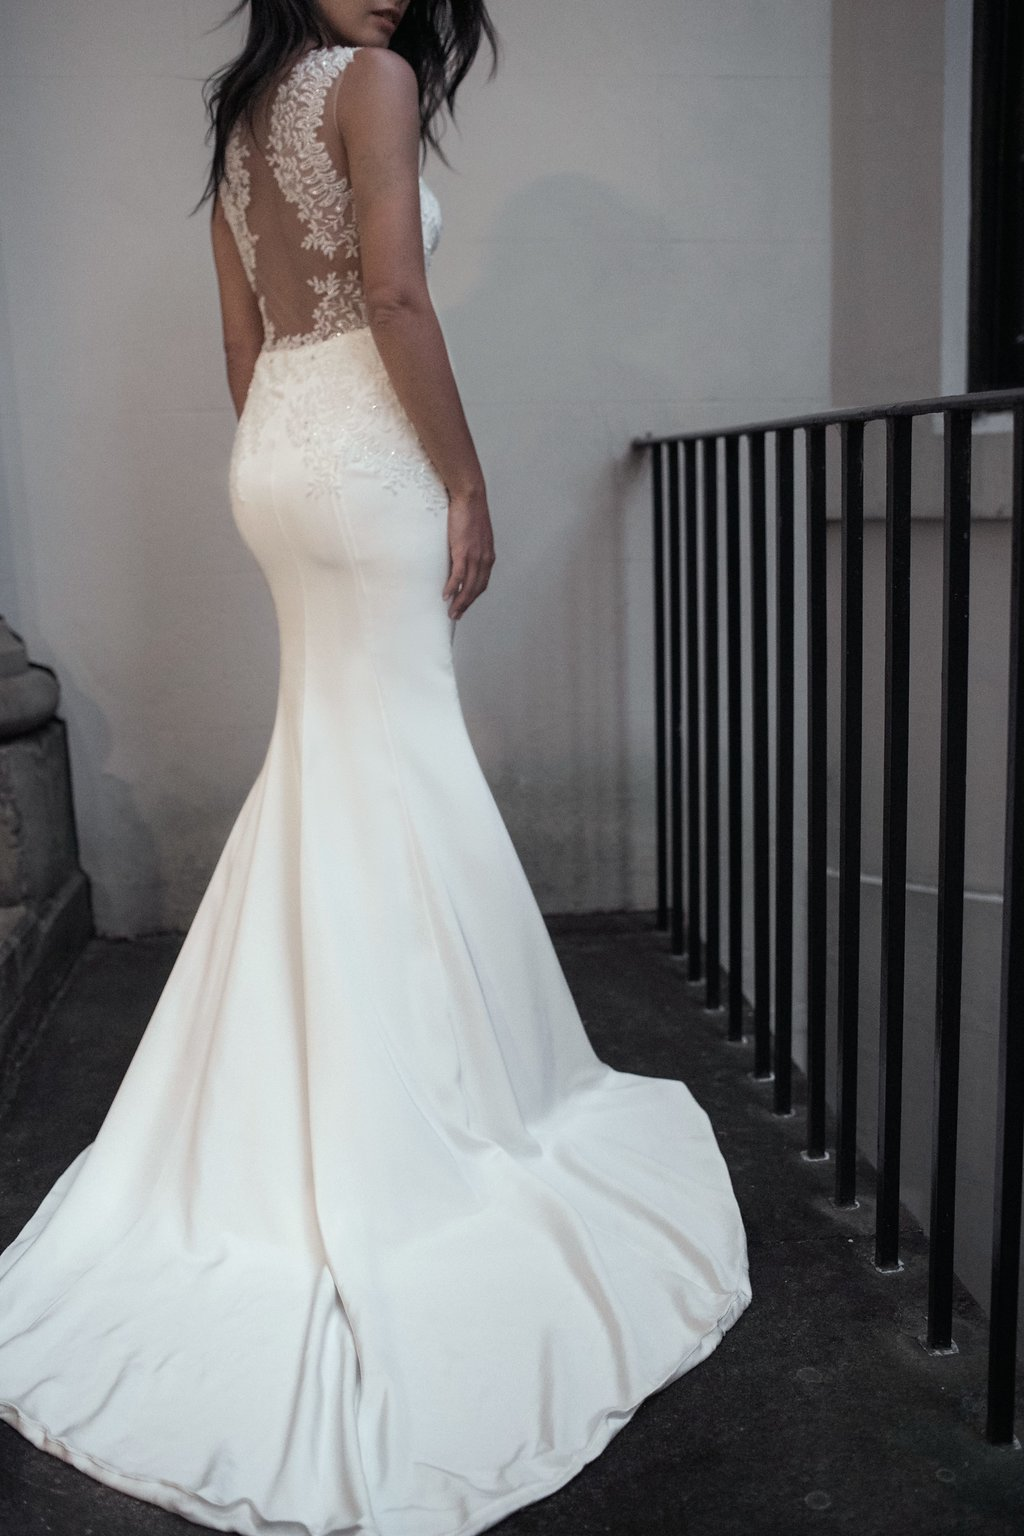 Anya Wedding Dress by Moira Hughes Couture | Featured on Love Find Co.